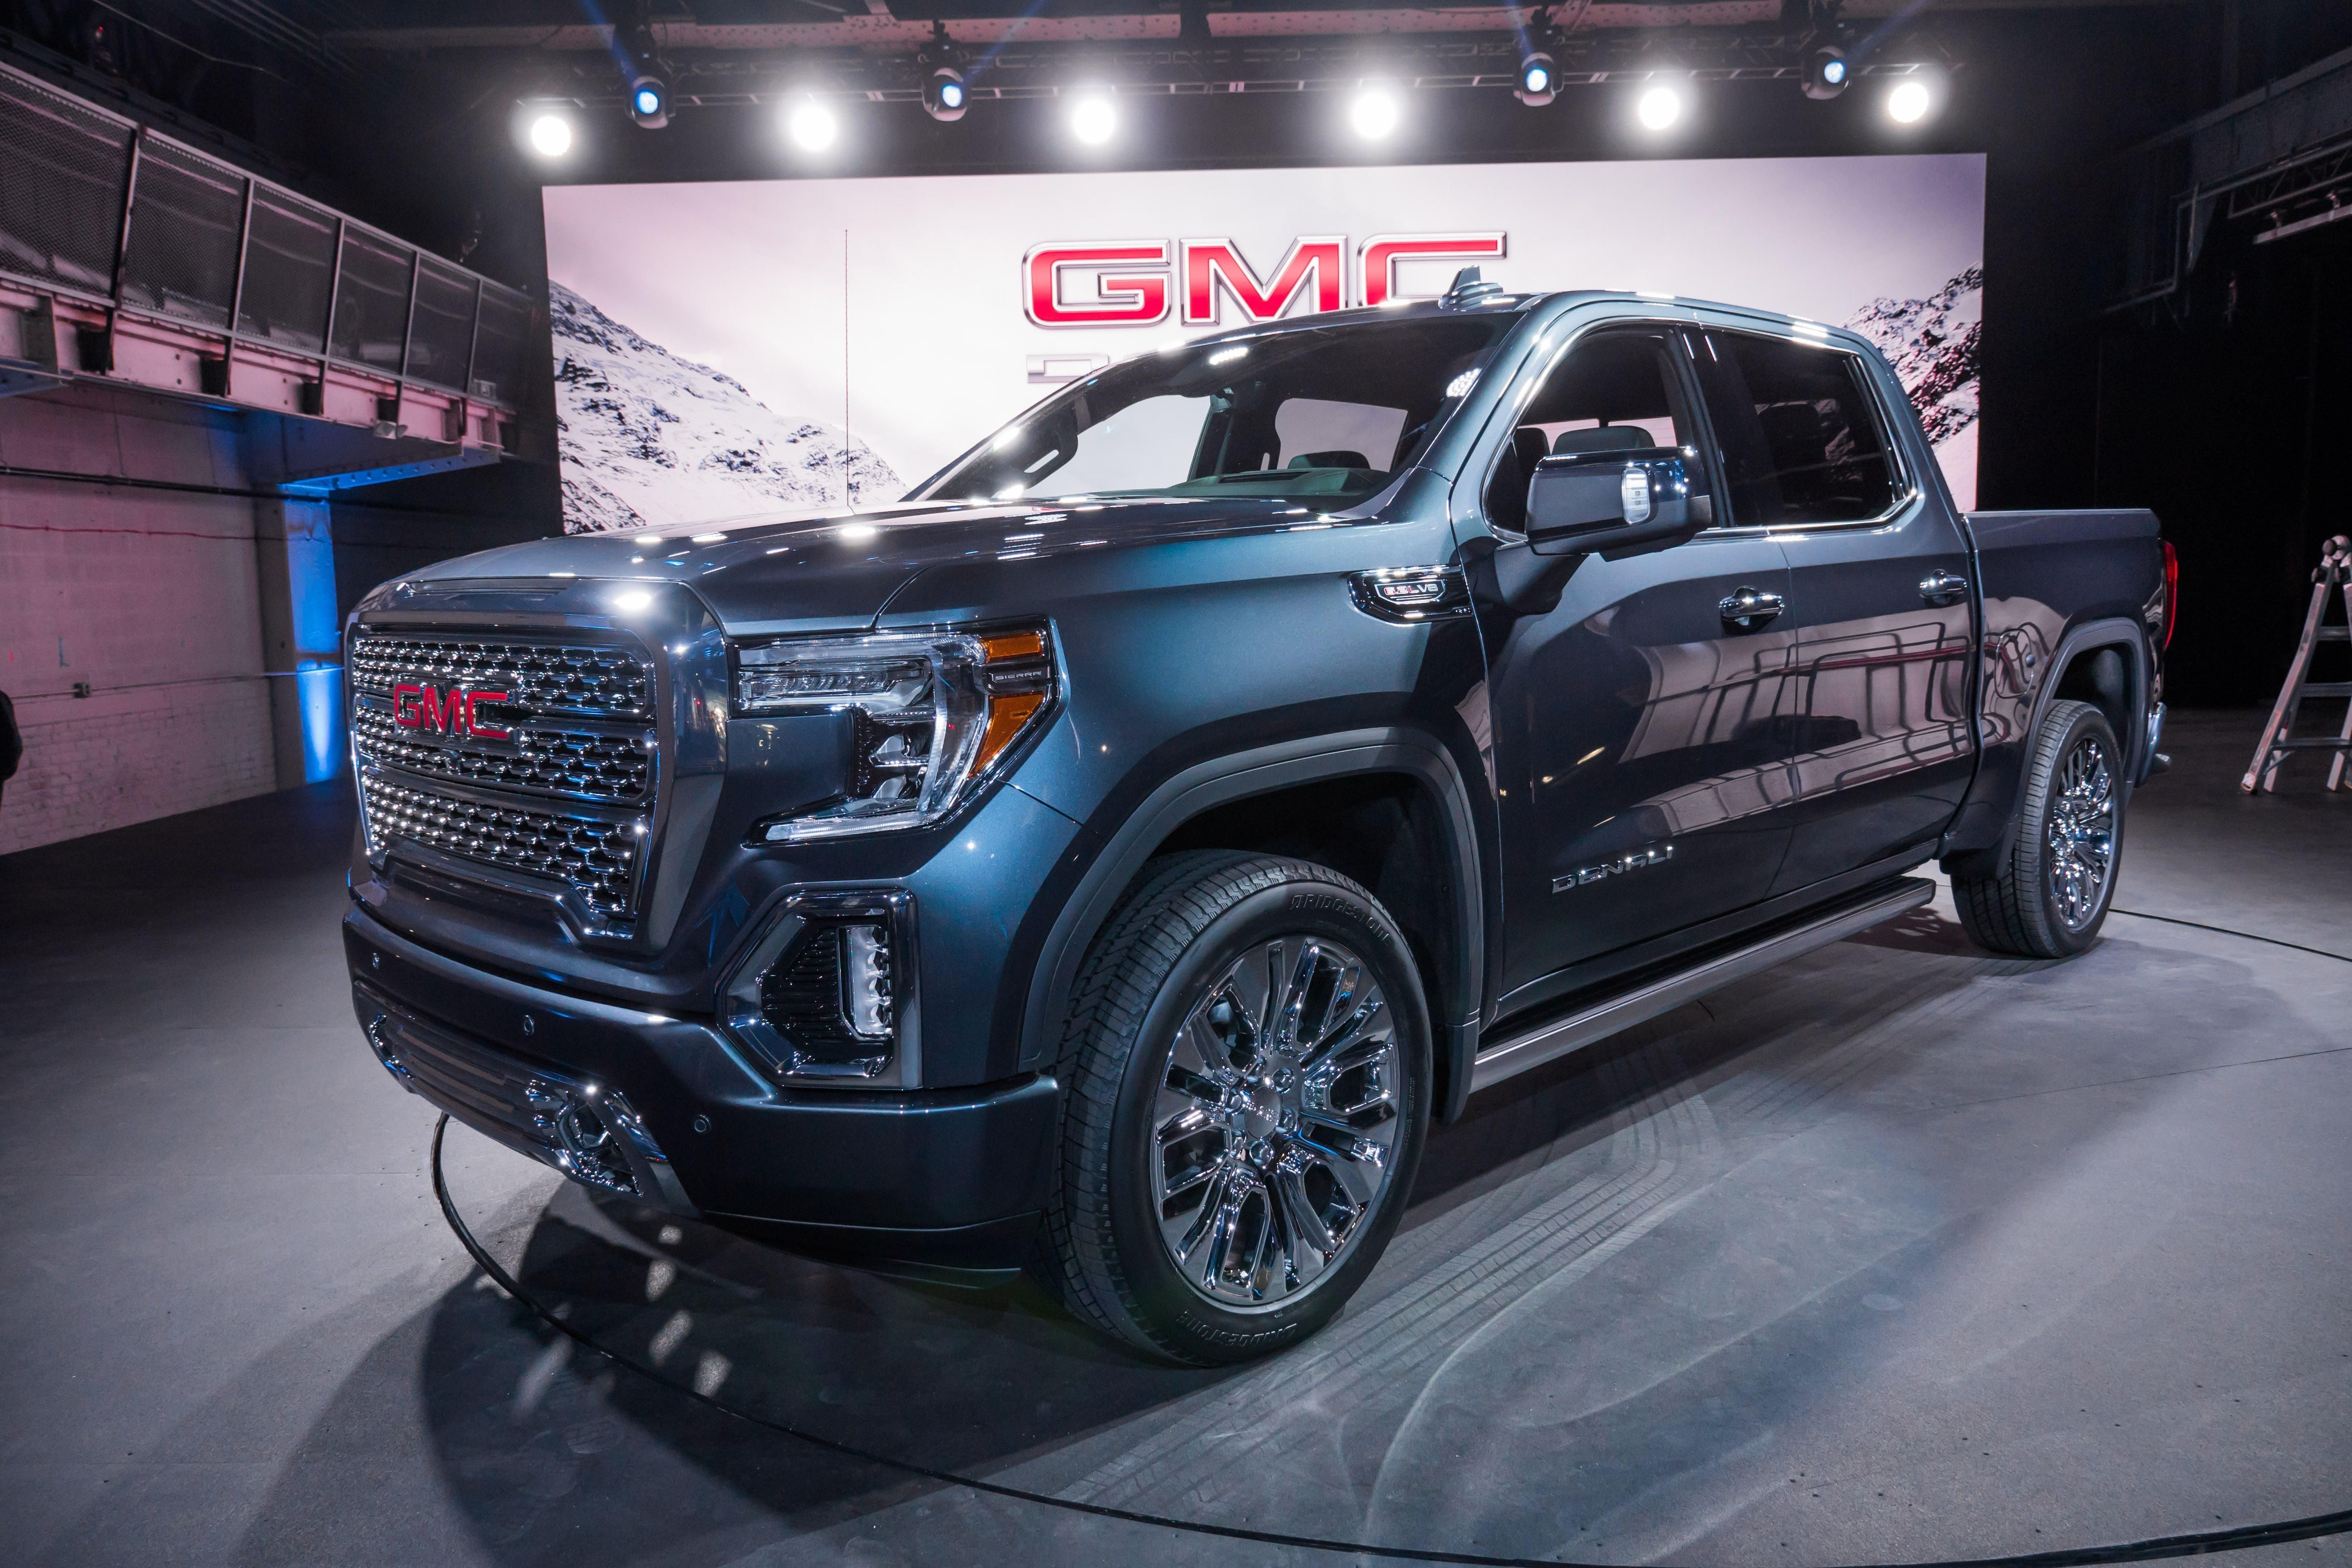 New 2019 Gmc Denali Xl Release Date And Specs Gmc Denali Yukon